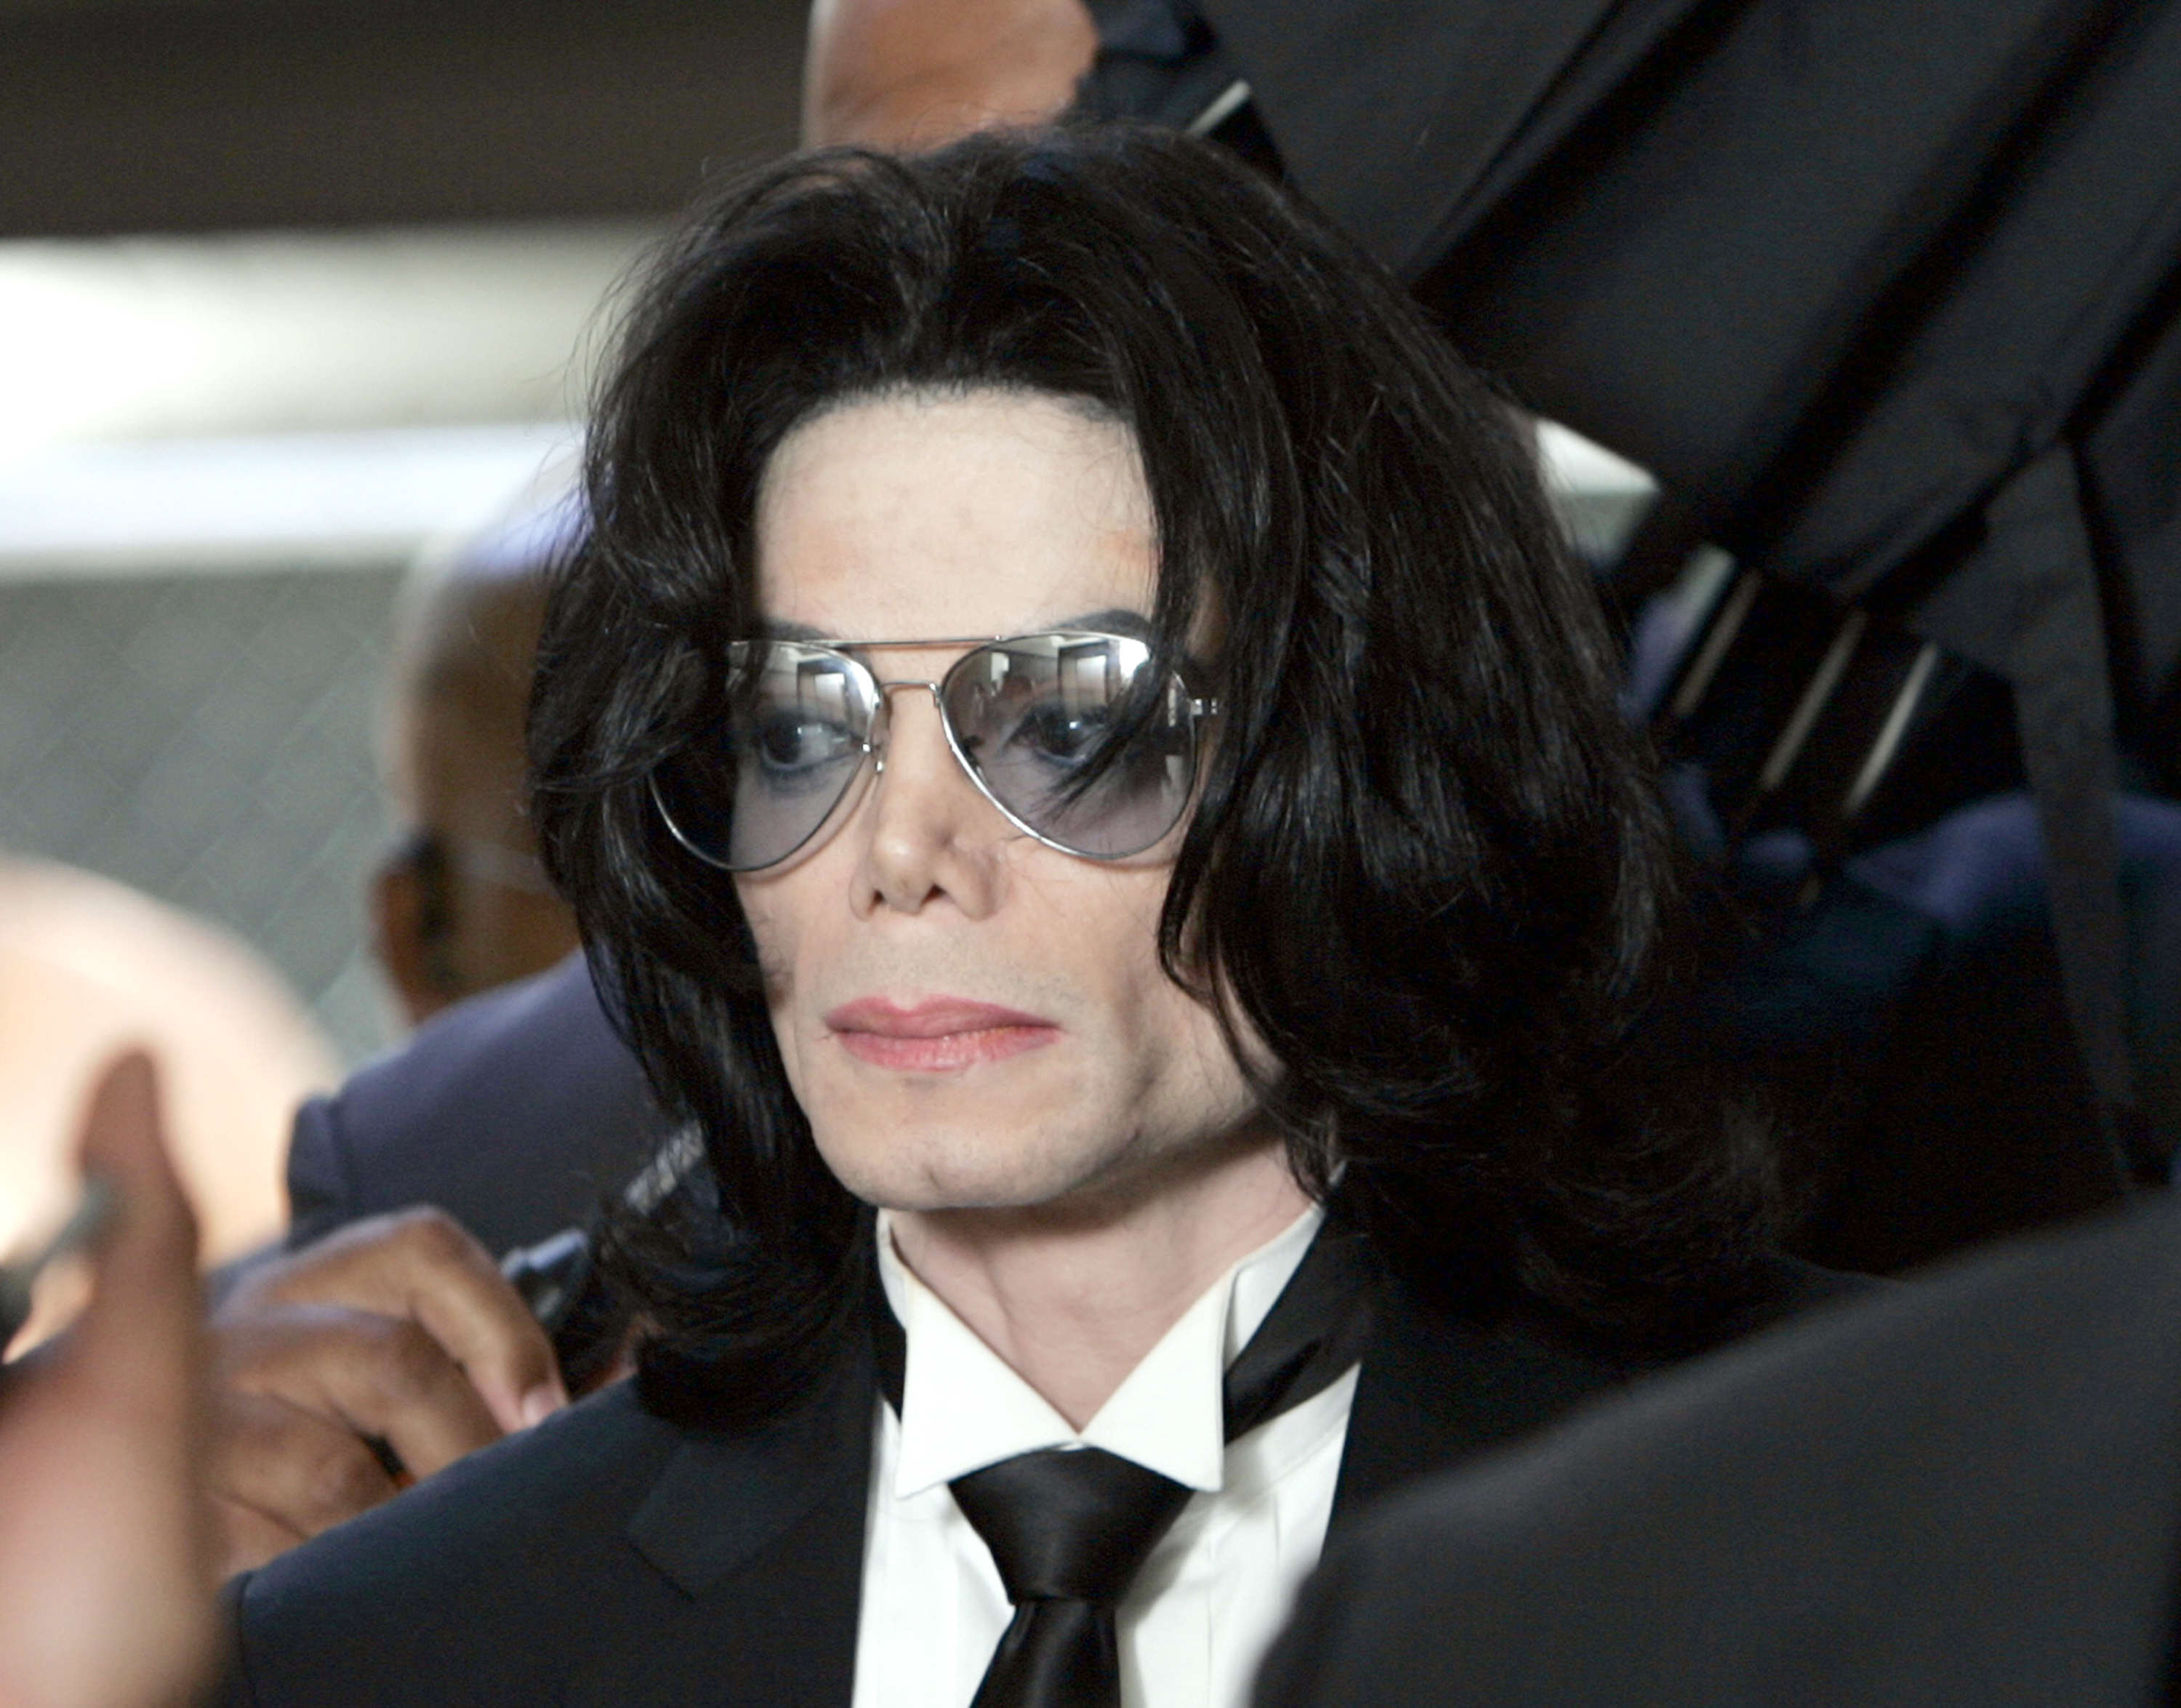 jacko Details Of Prince And Michael Jacksons Long Running Feud Revealed